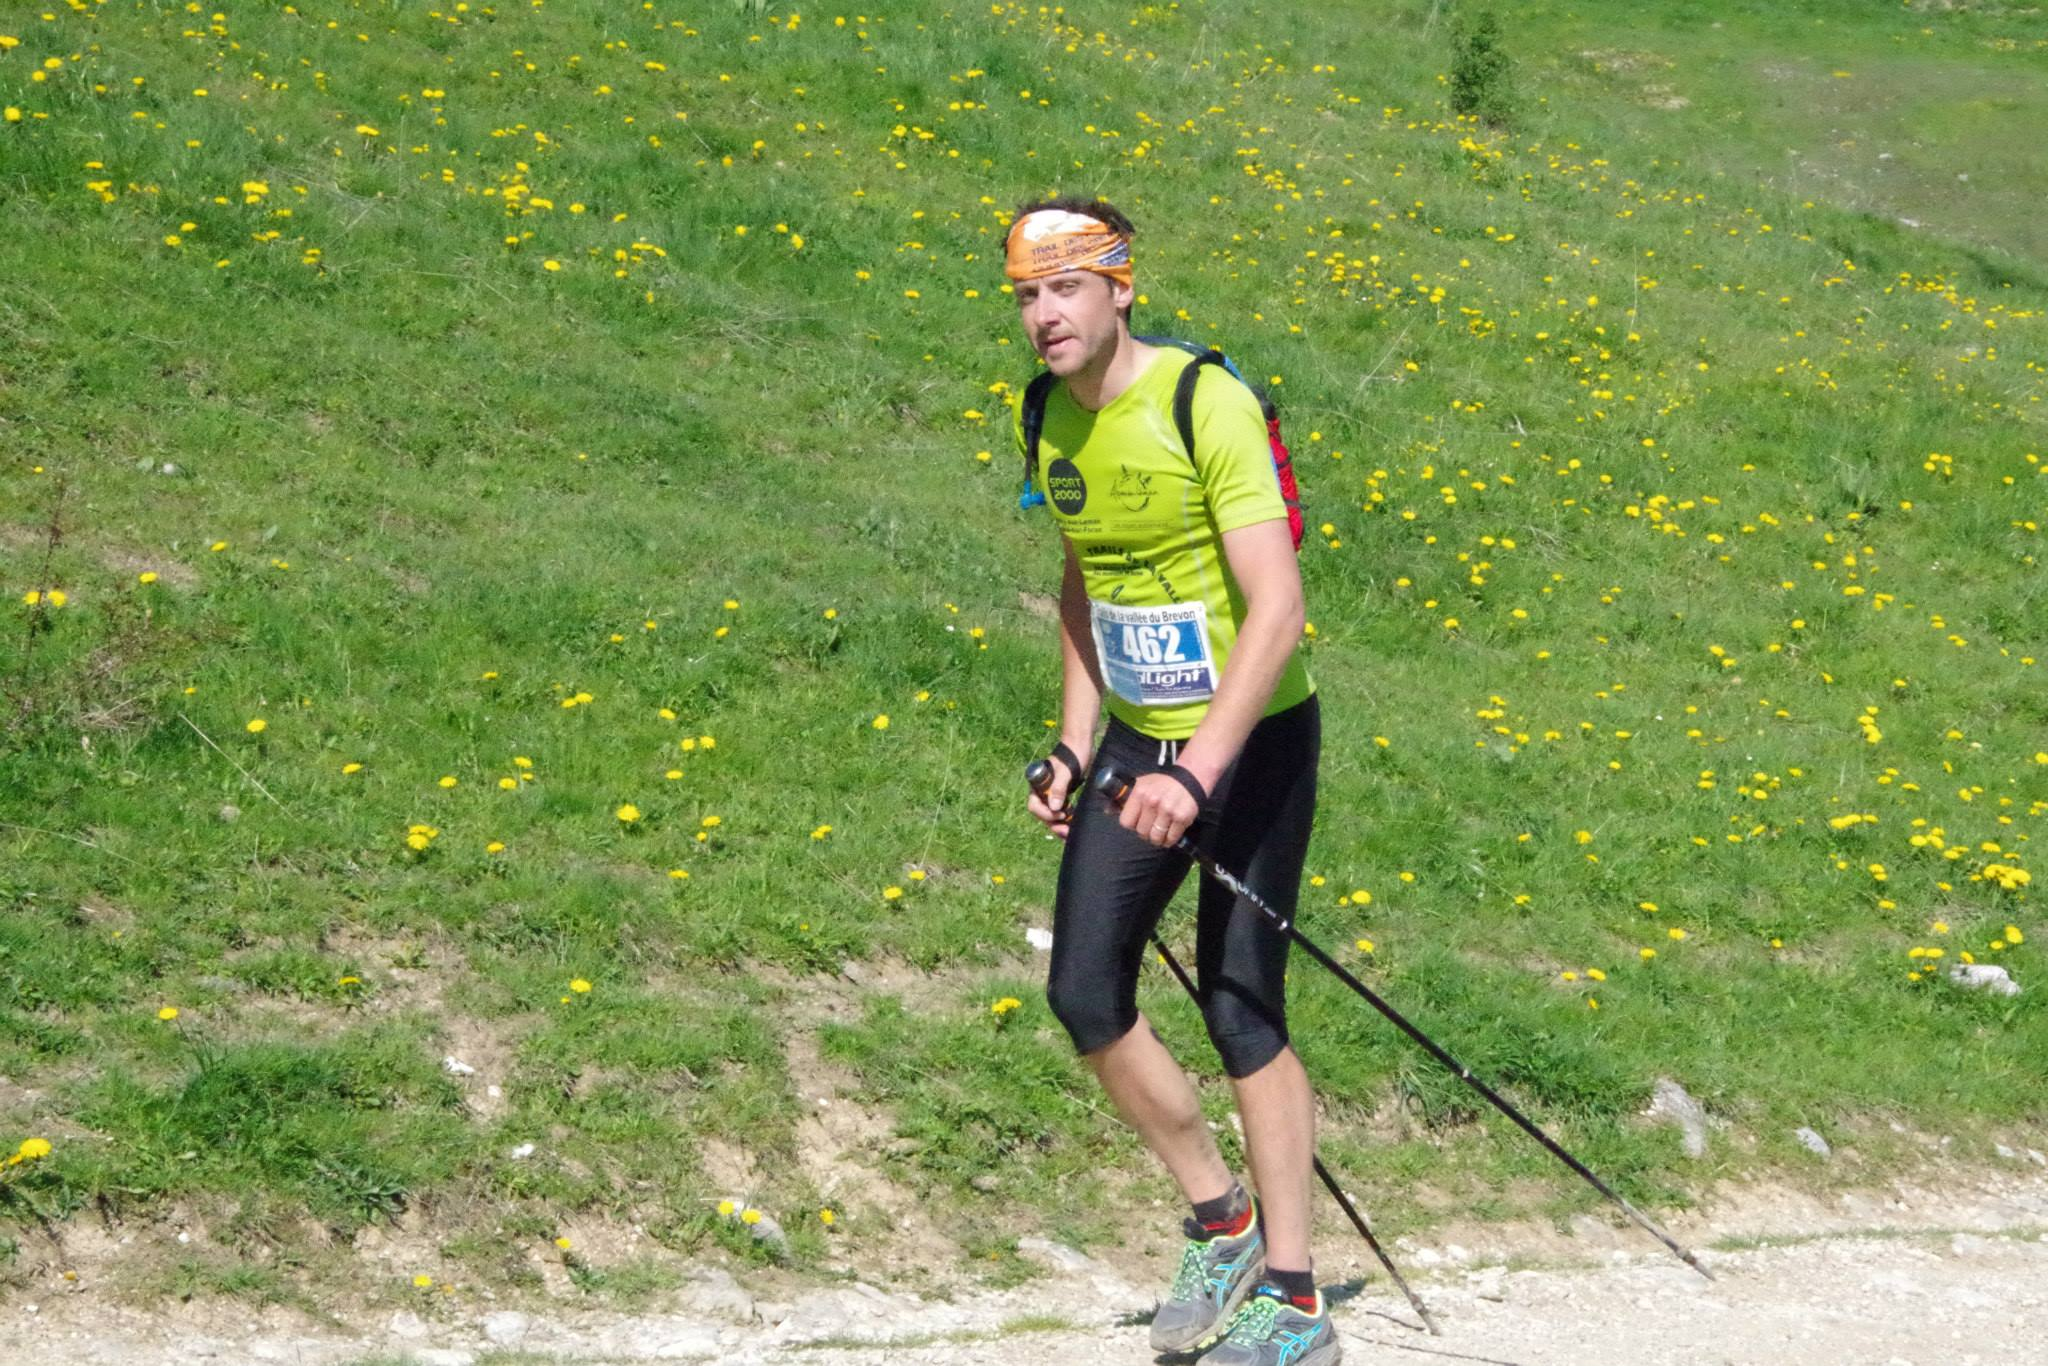 11133882 10153893233897782 6545856016737645139 o - RESULTATS, COMMENTAIRES, PHOTOS ET VIDEO DES TRAILS DE LA VALLEE DU BREVON / 24-05-15